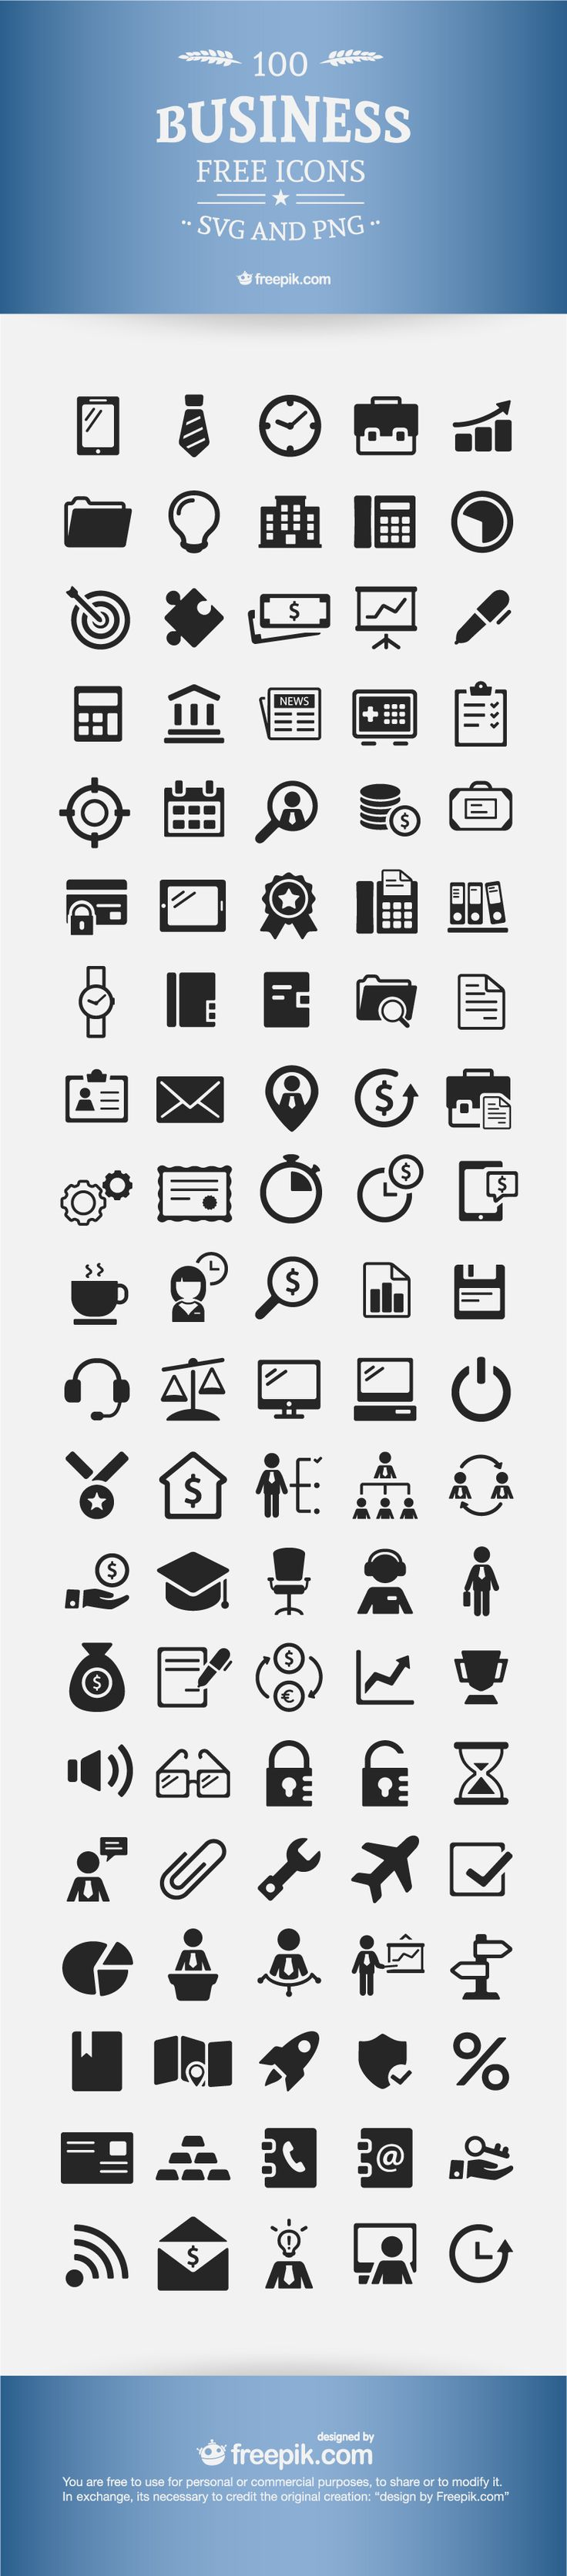 Business Icons - FREE for both personal and commercial projects.